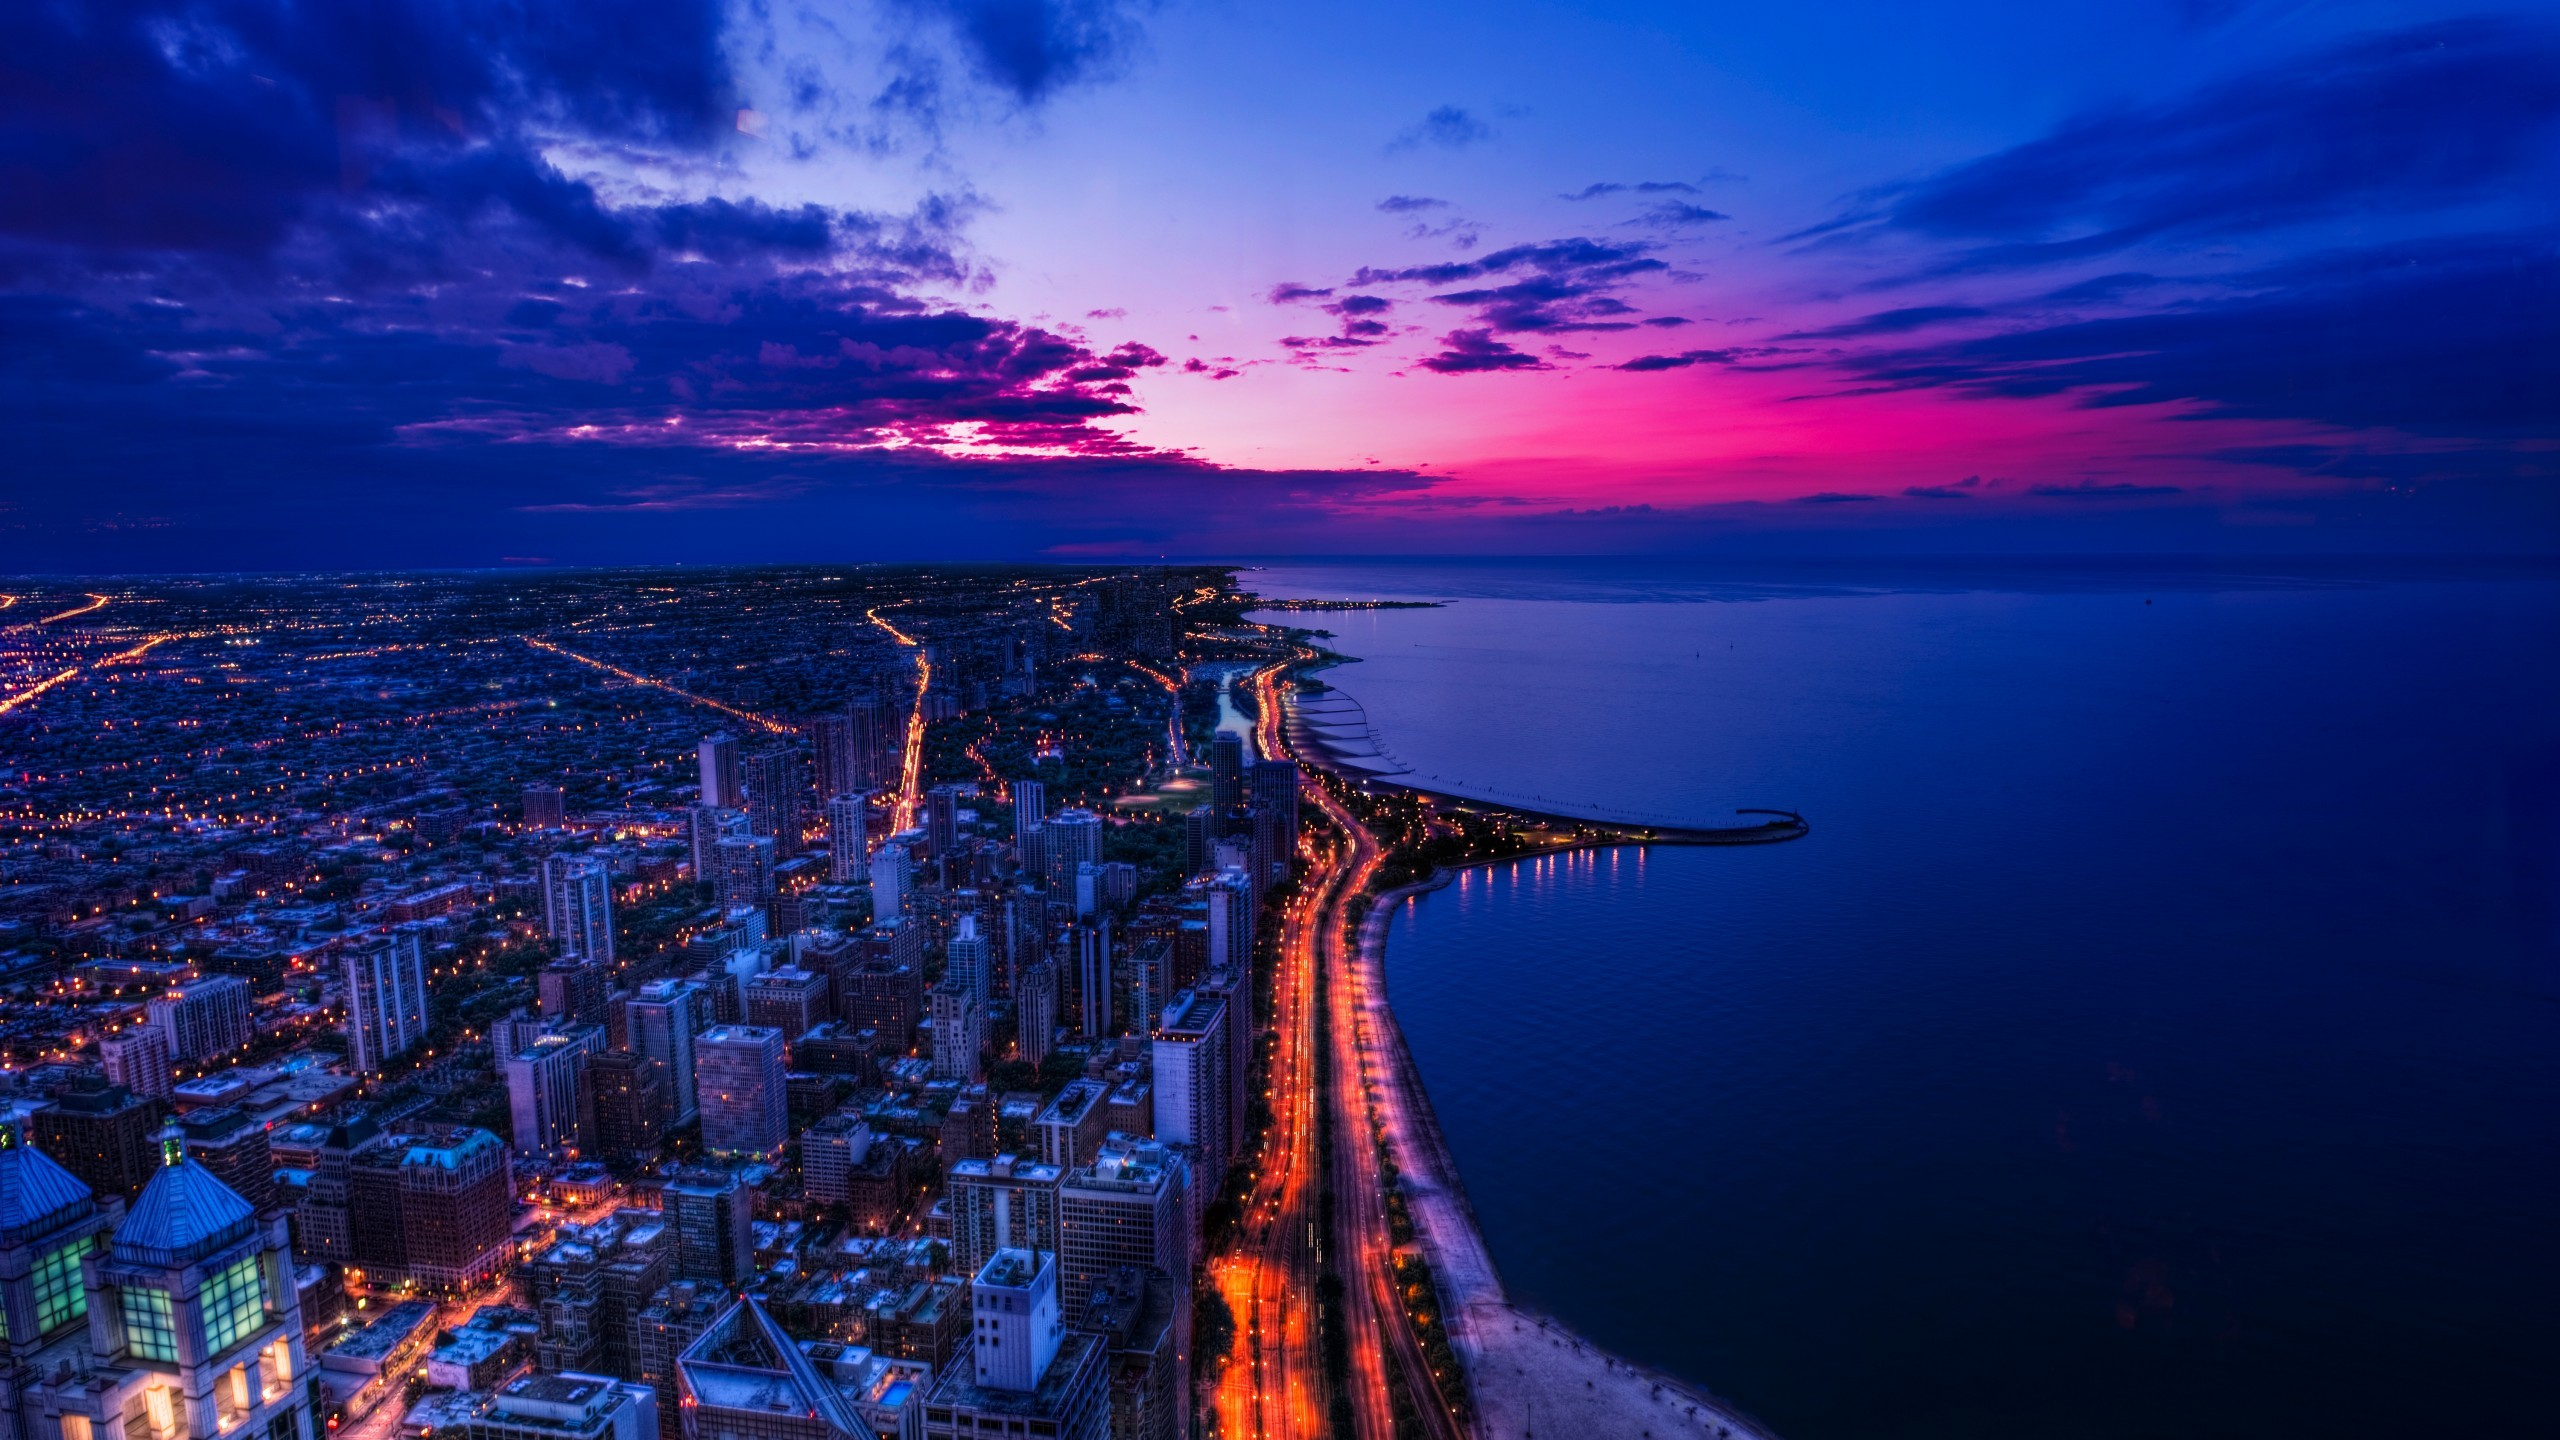 Chicago Iphone X Wallpaper Chicago Sunset Wallpapers Hd Wallpapers Id 13351